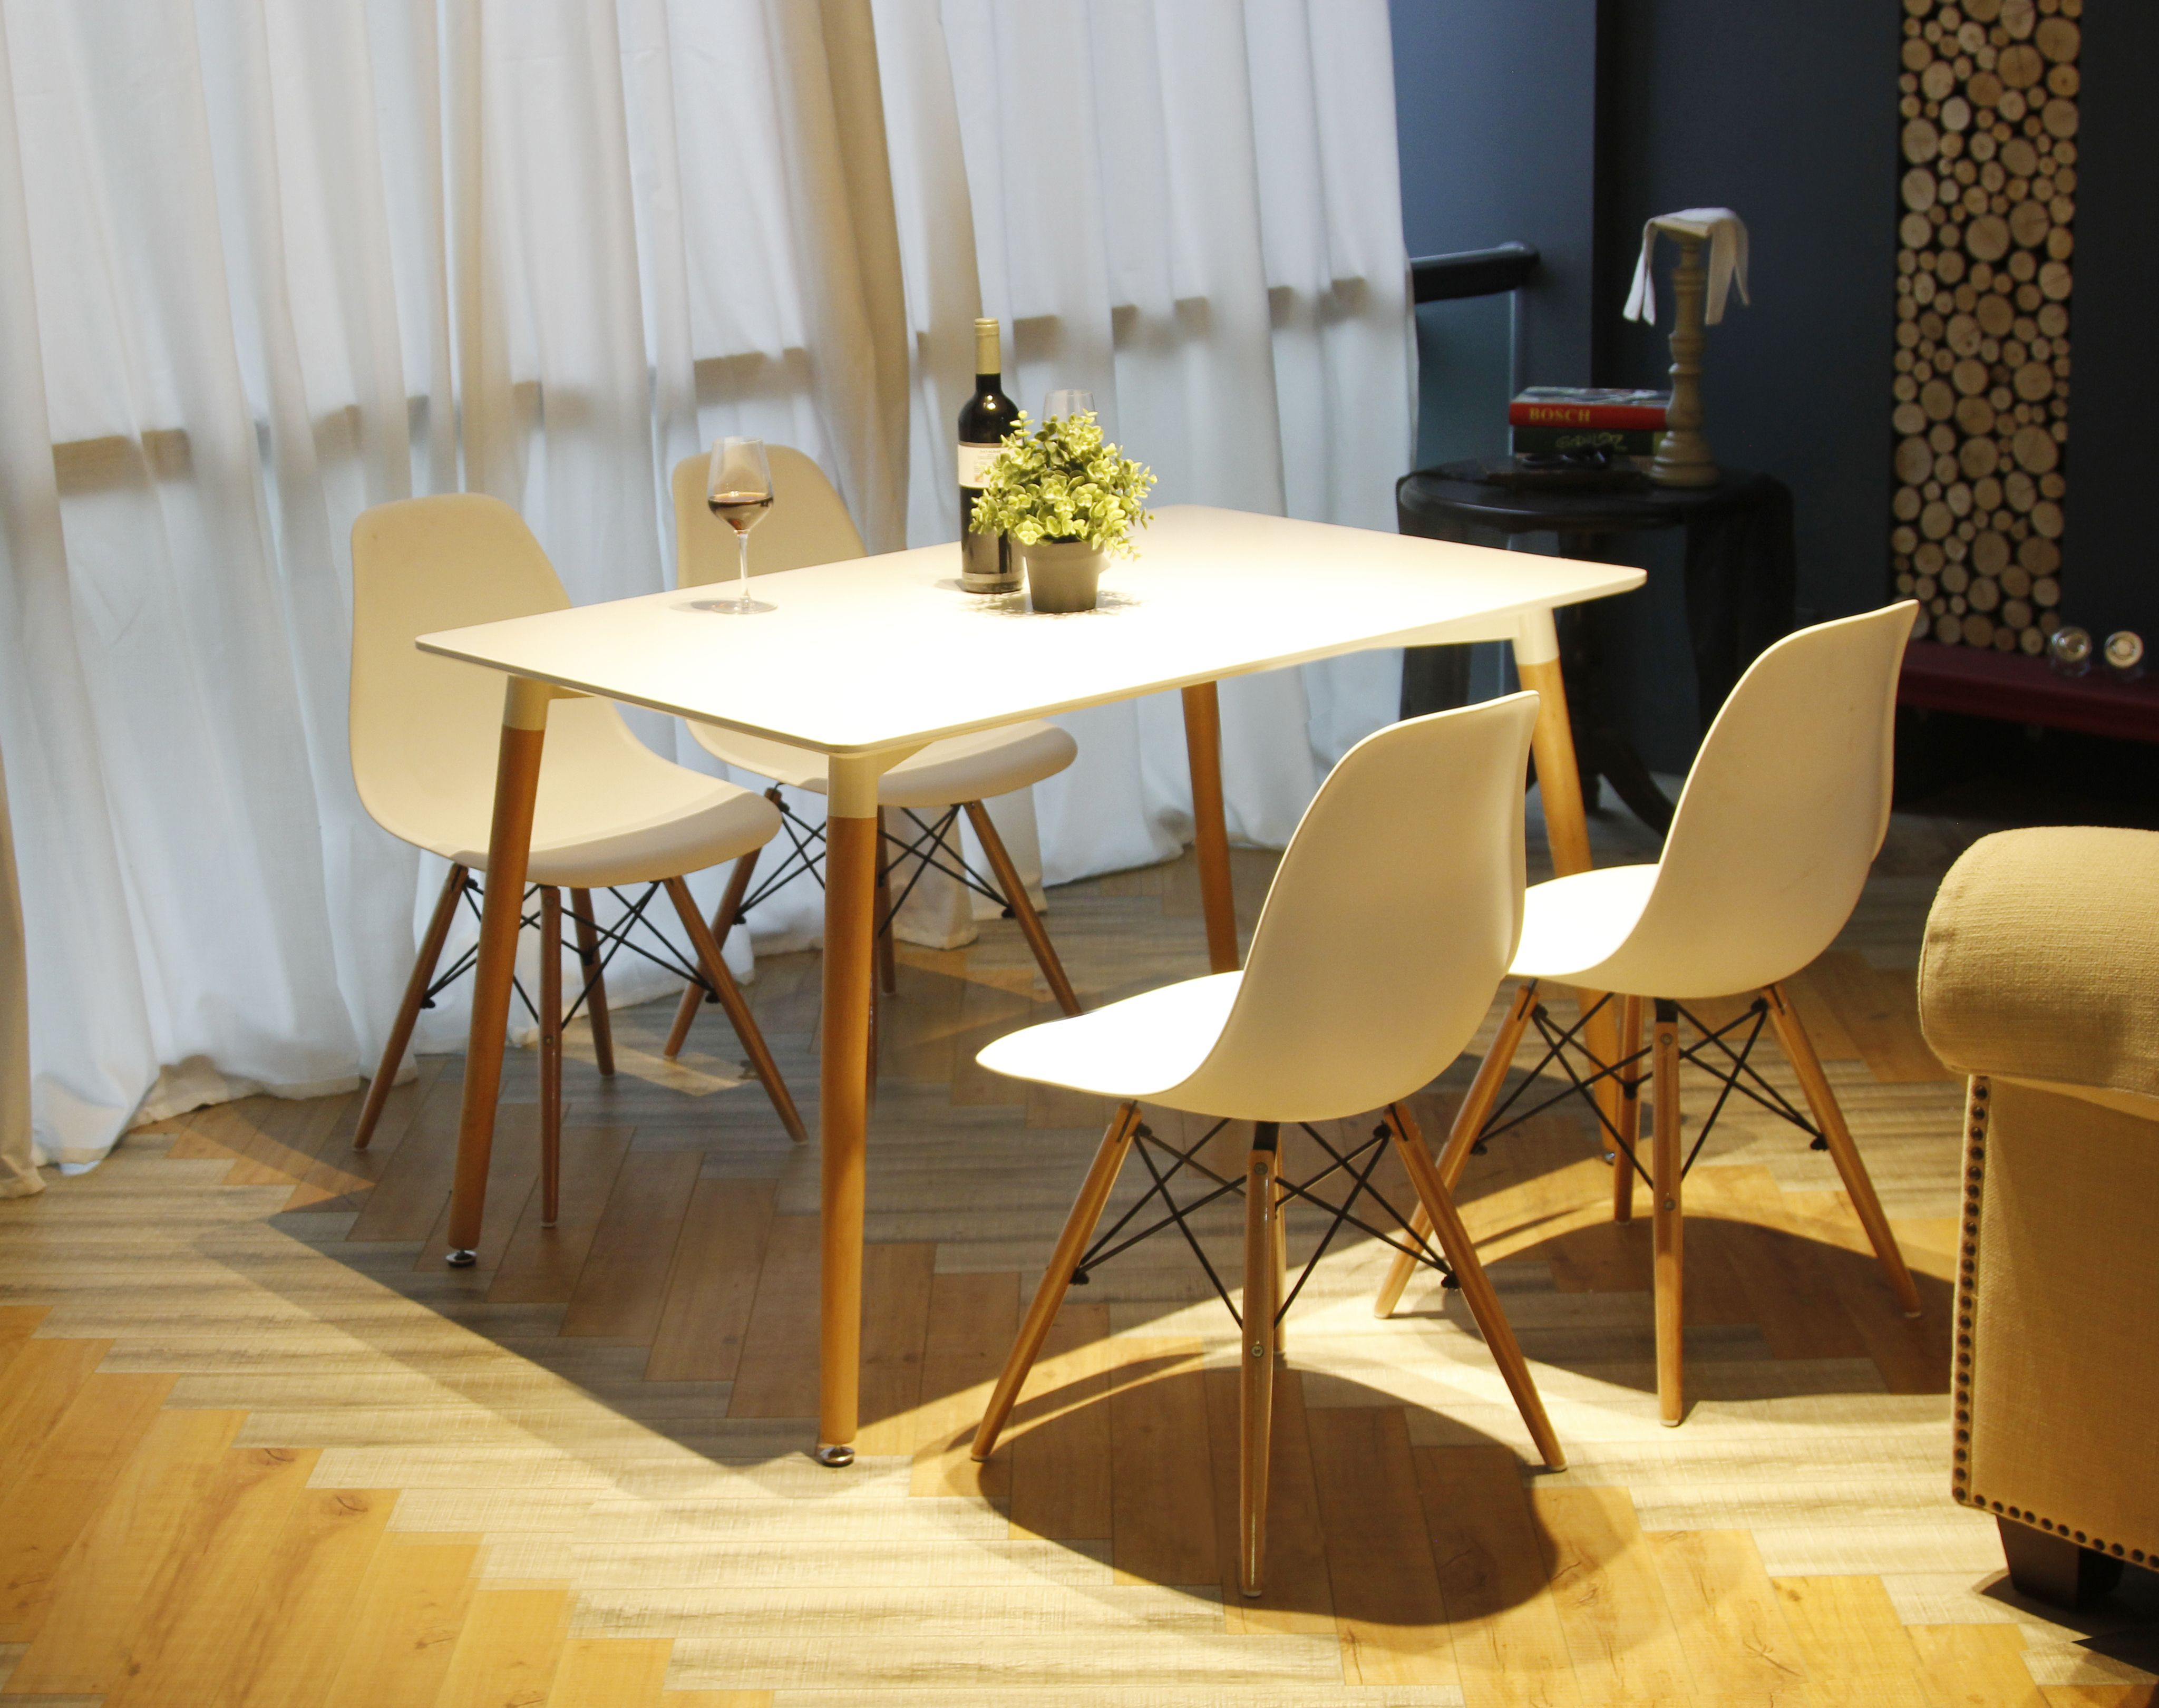 Gia White Armless Dining Chair Eames Style Easy Assembly Durable Prepossessing Comfortable Dining Room Sets Design Inspiration